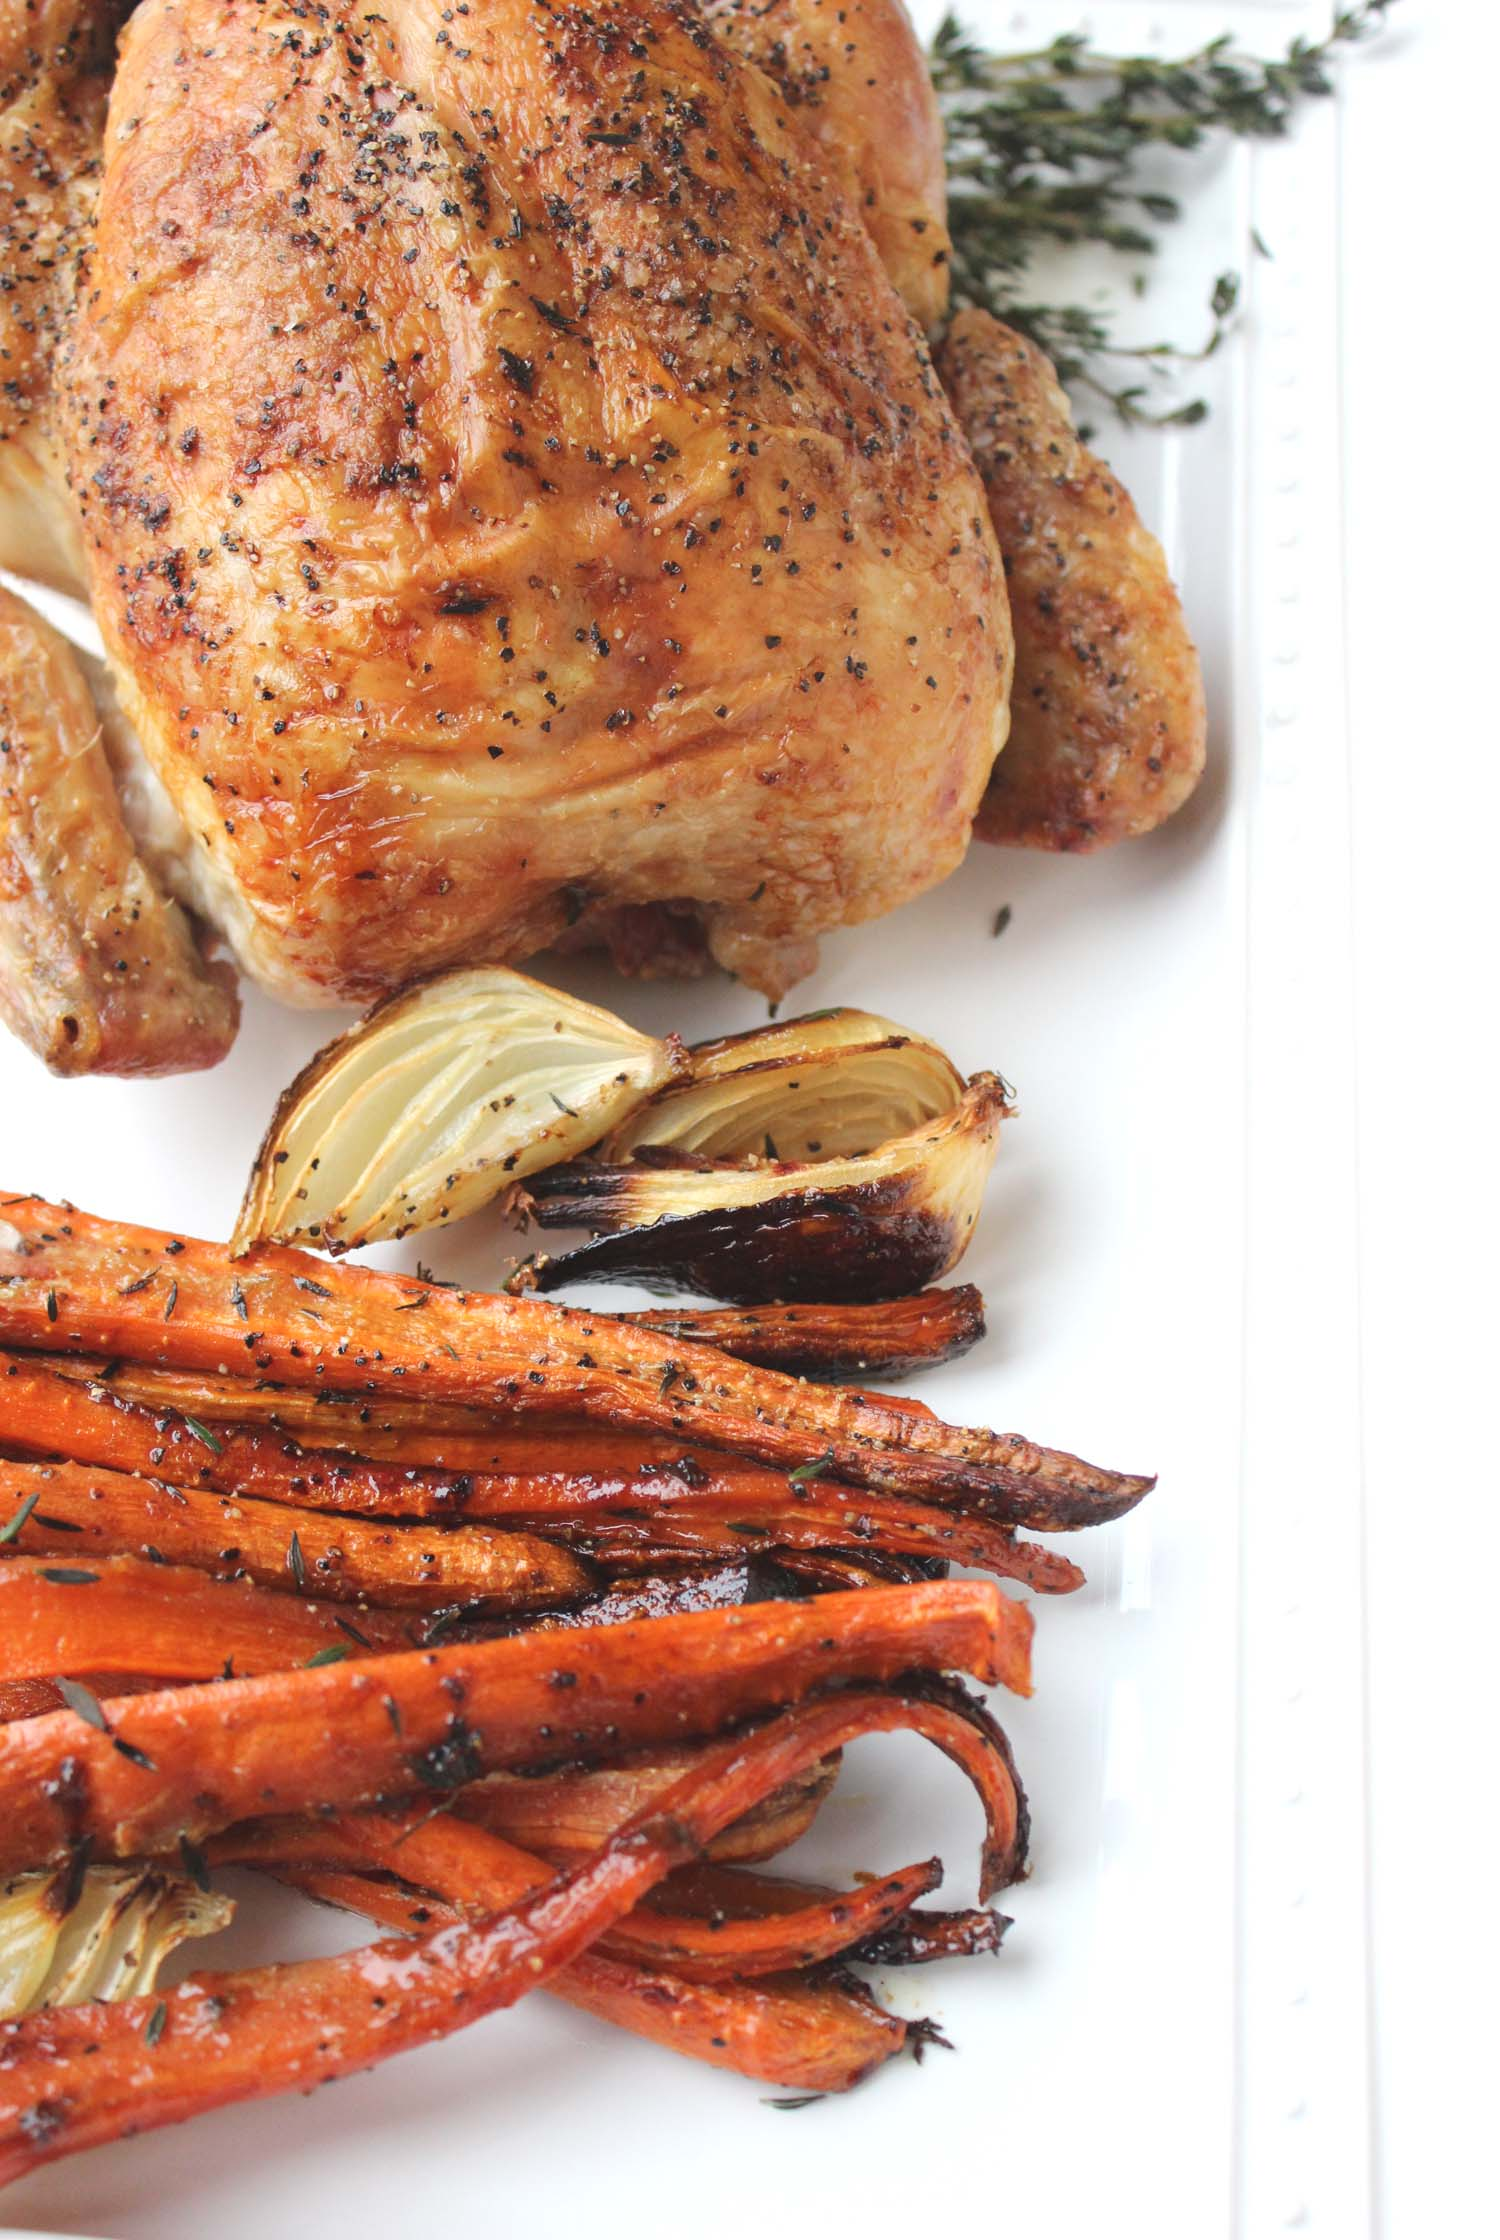 Lemon Garlic Roasted Chicken   | Image:   Laura Messersmith